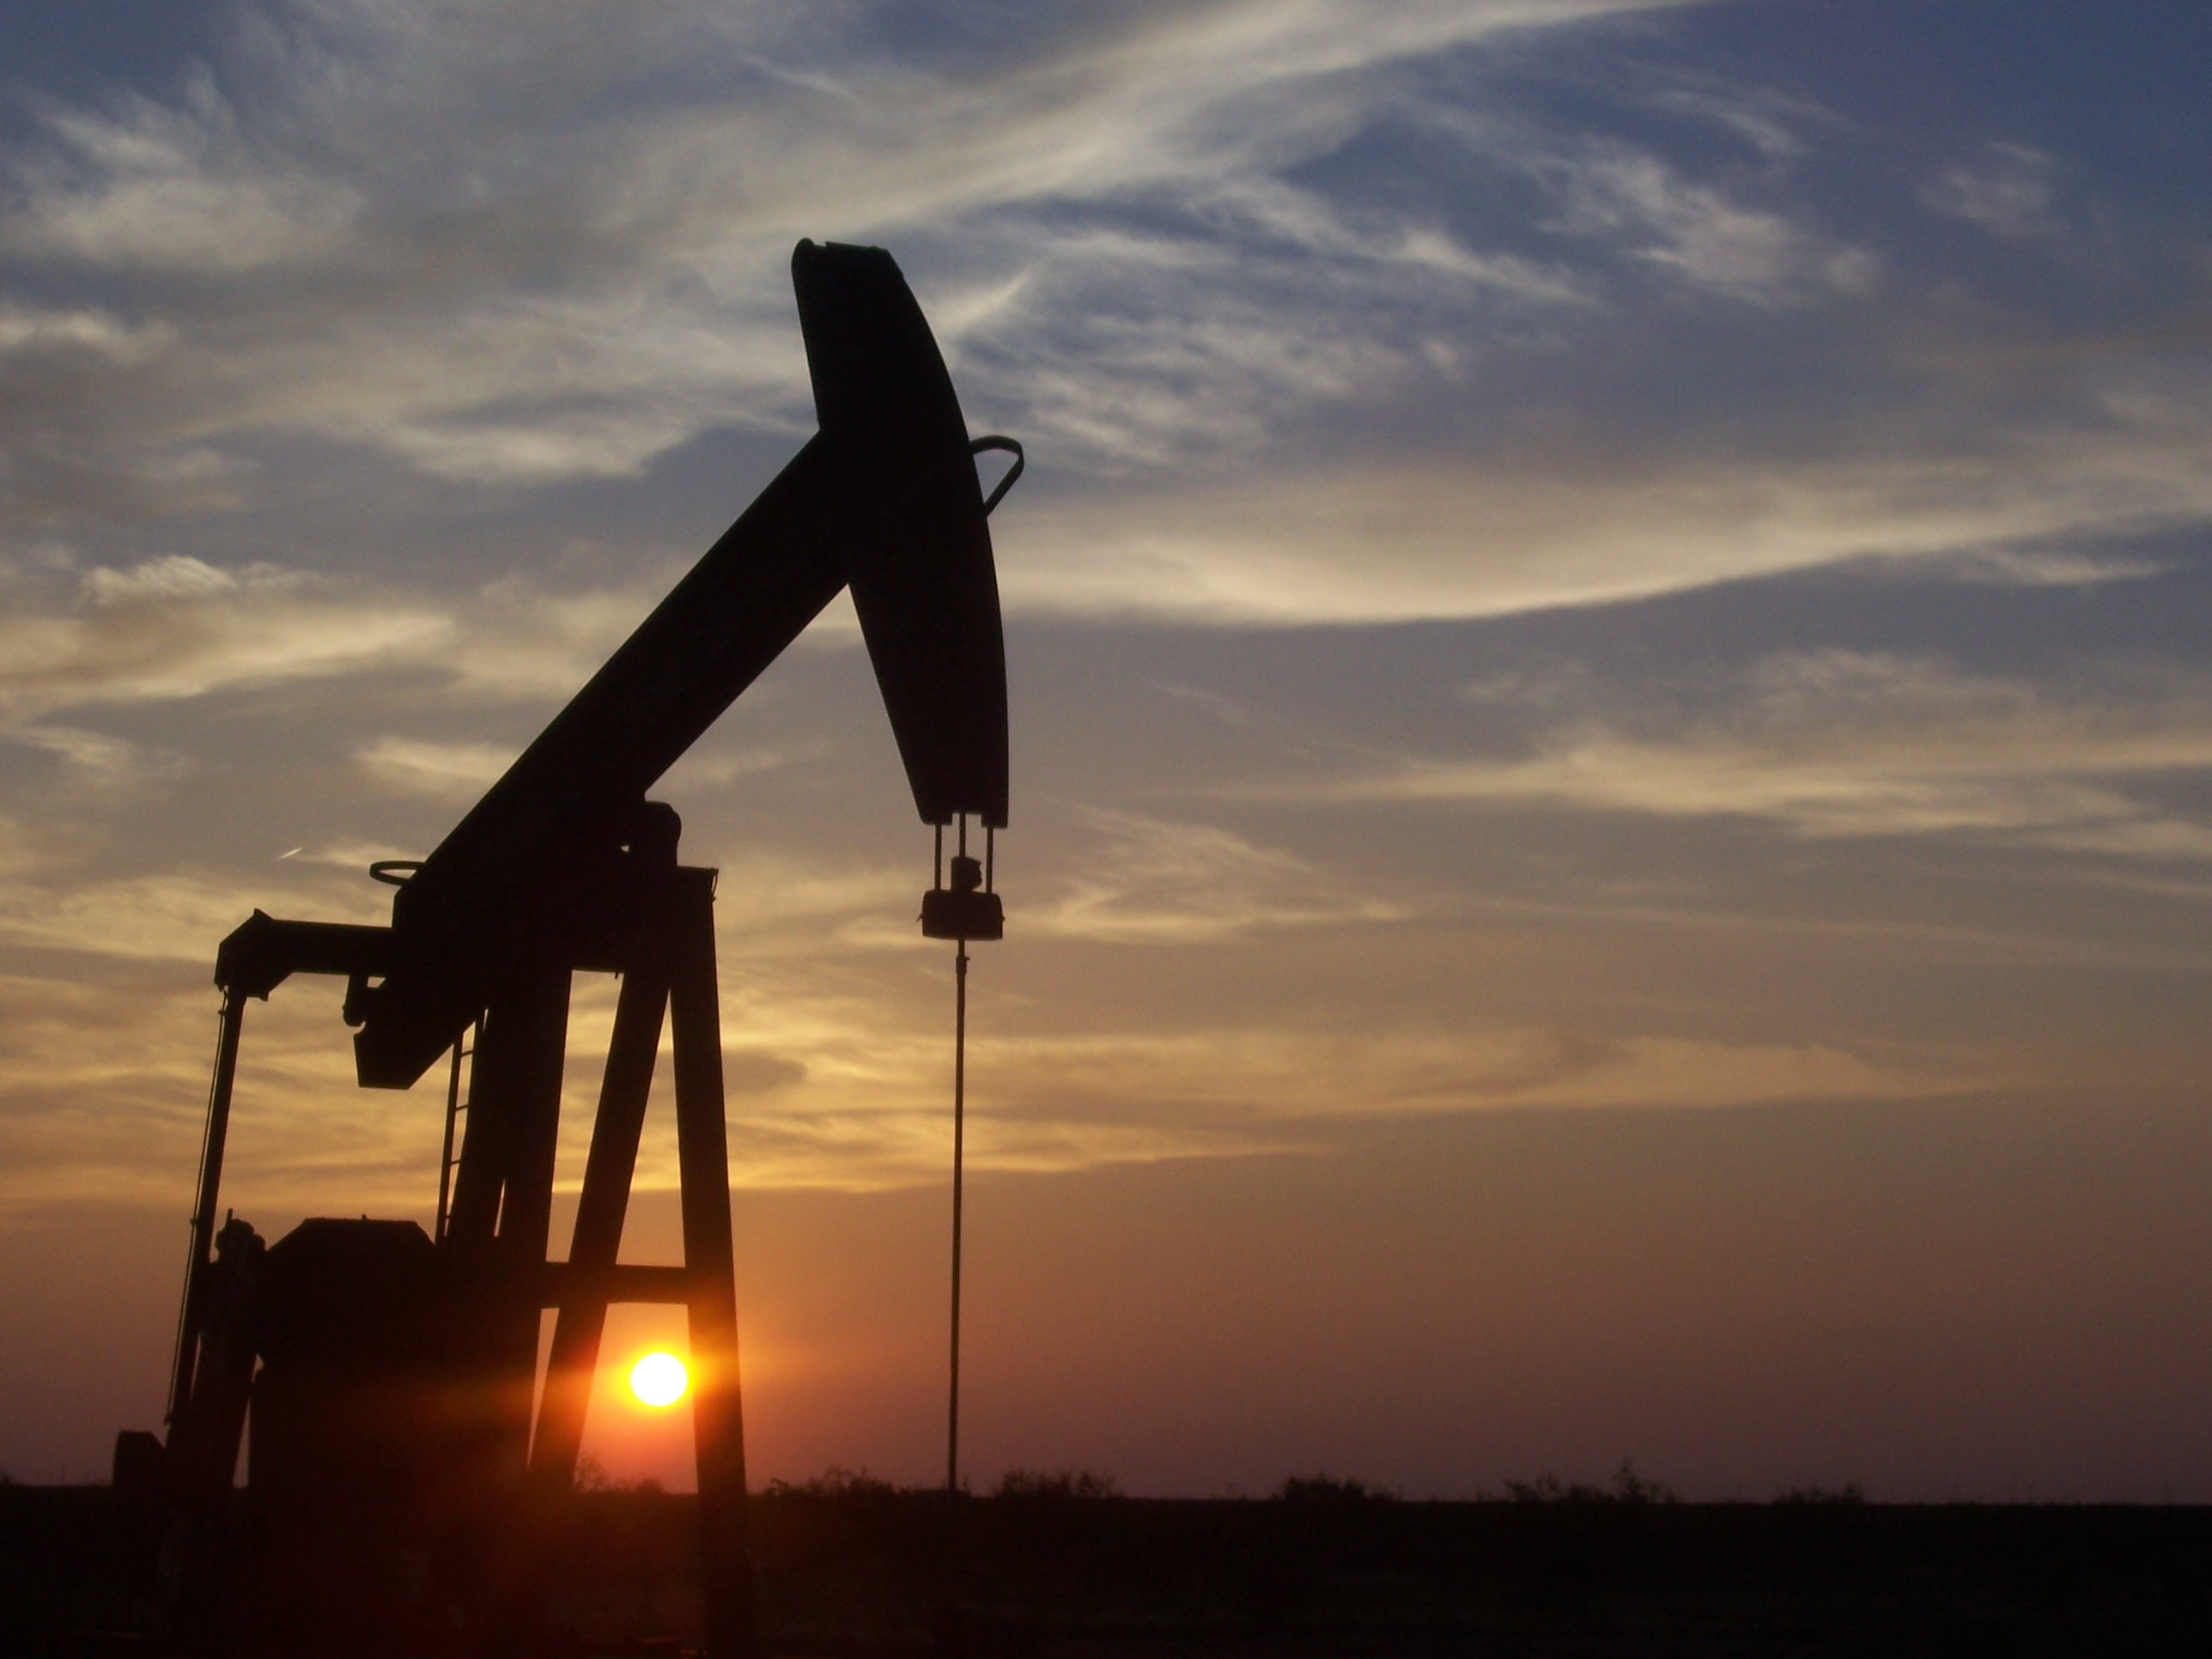 Goldman Sachs Projects Oil Industry Adding 100K Jobs by 2018